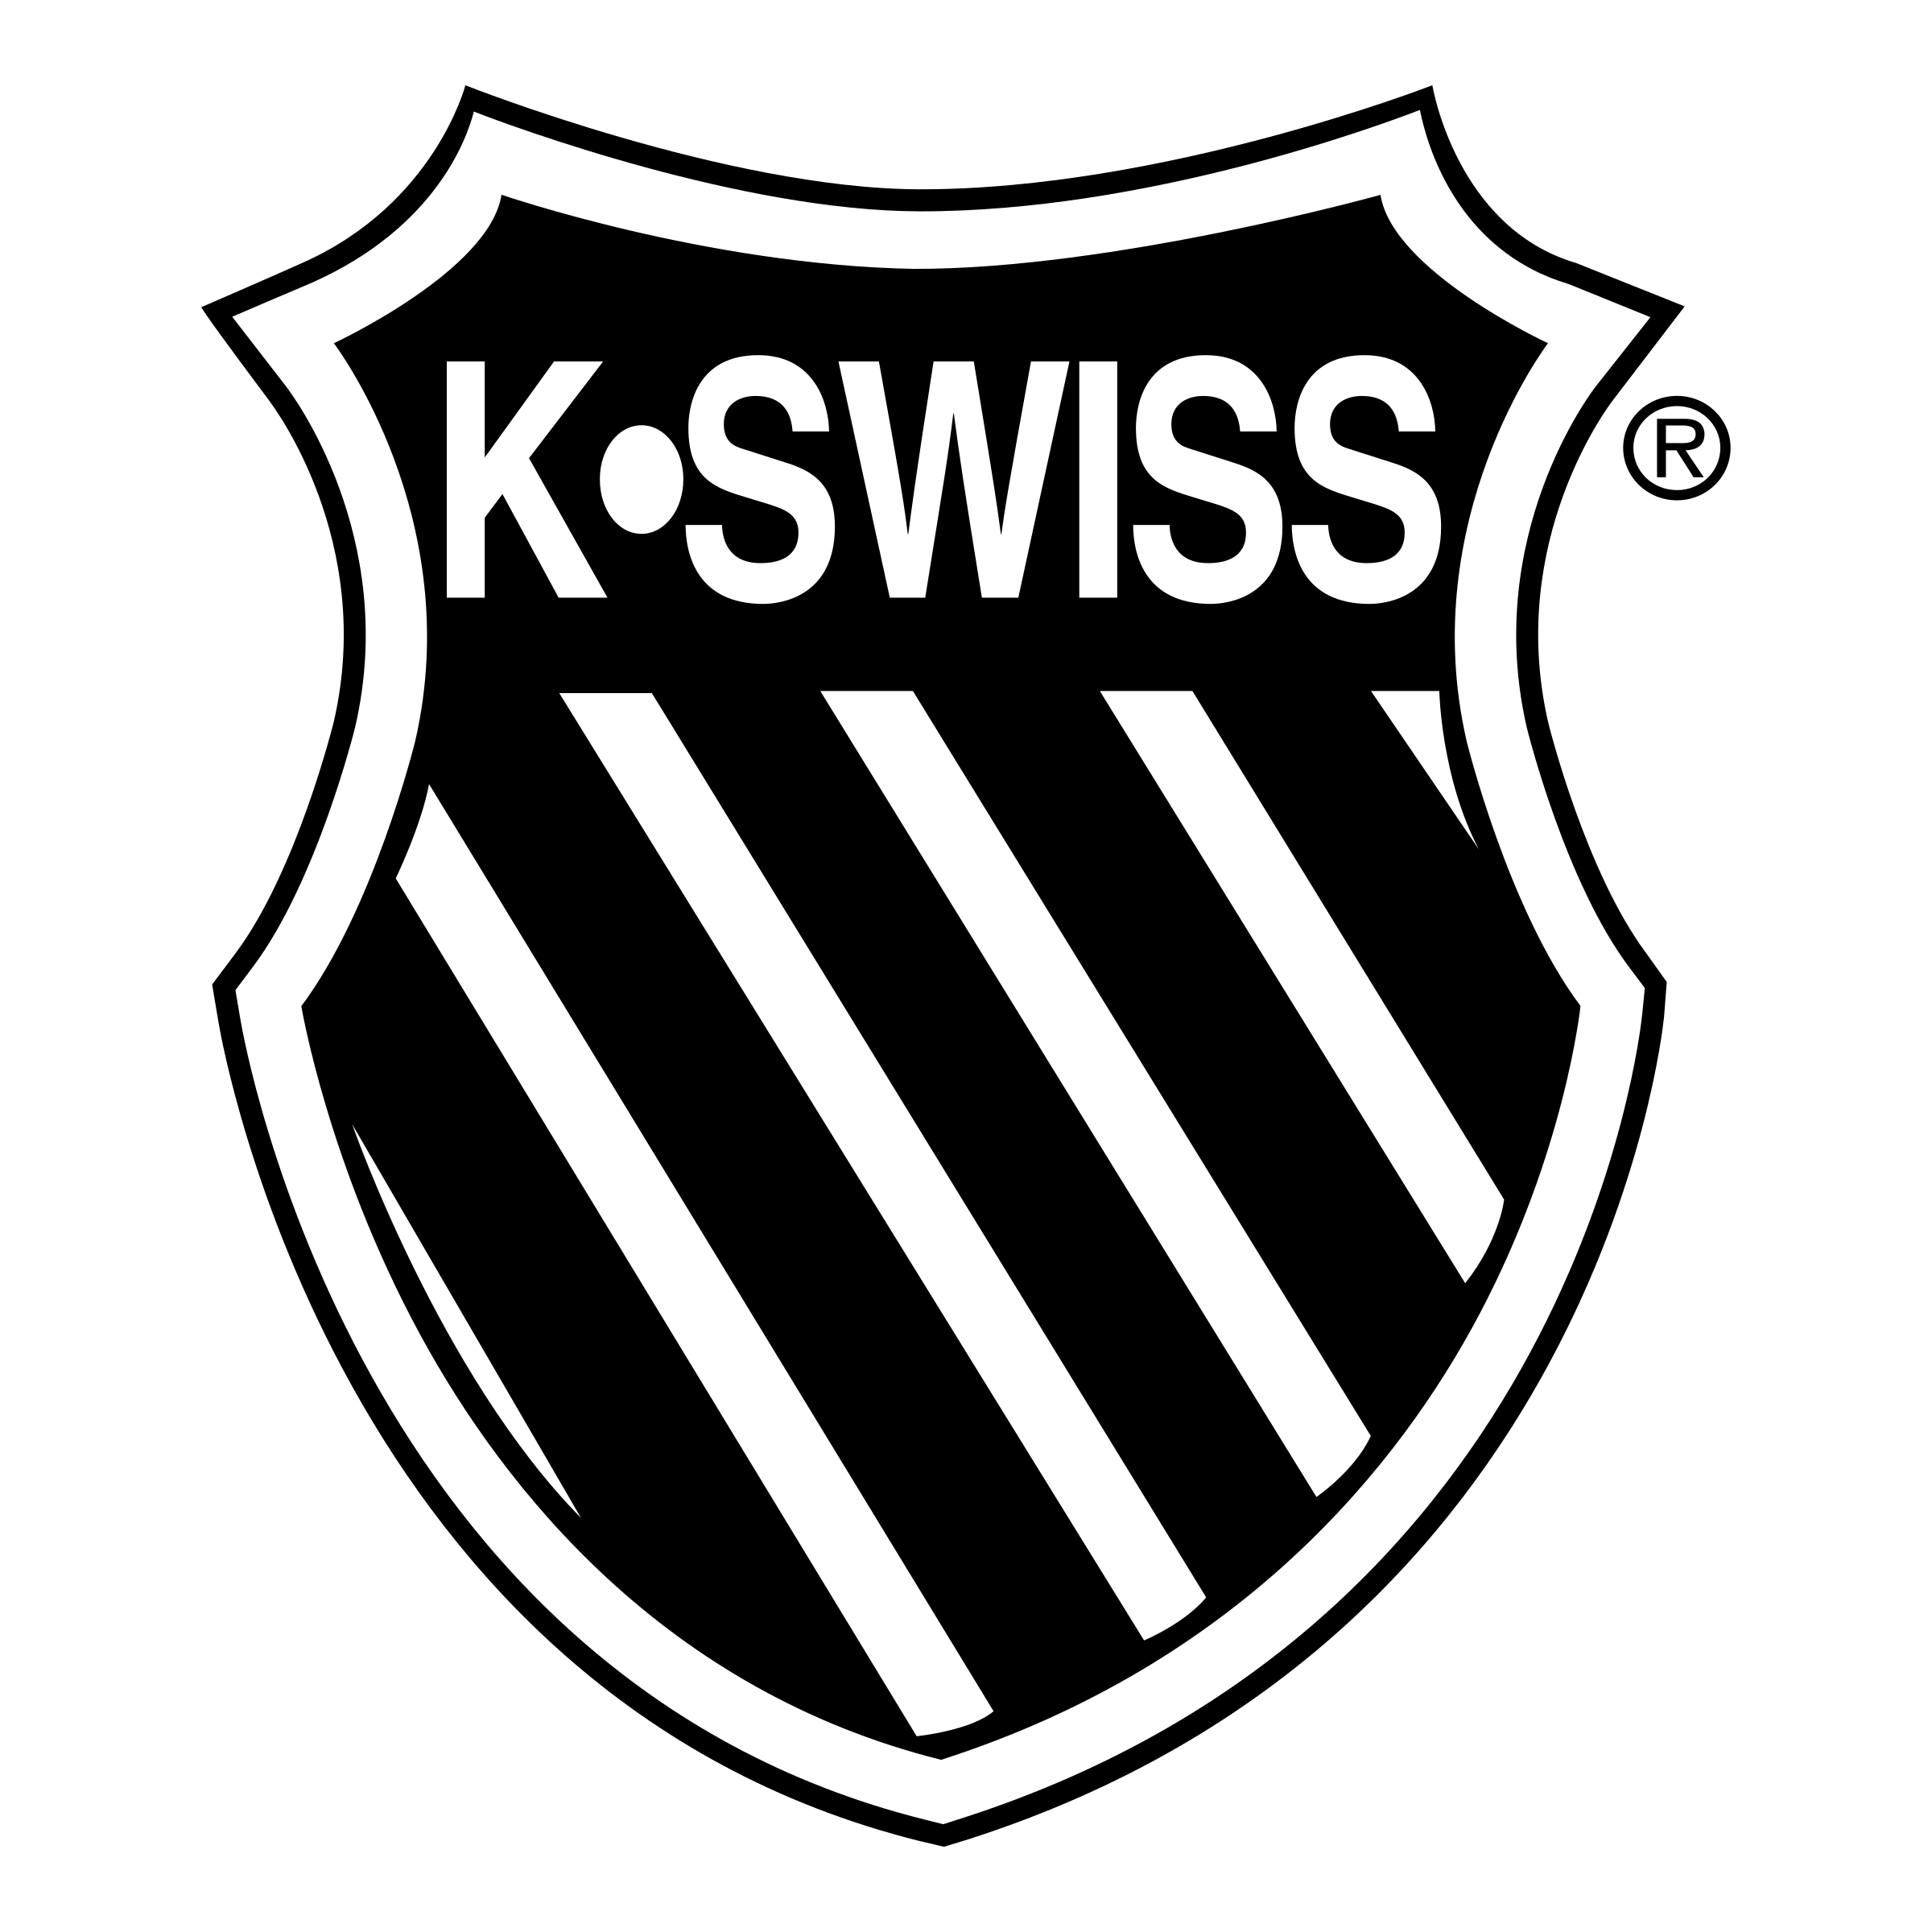 K-Swiss Logo - K Swiss Logo PNG Transparent & SVG Vector - Freebie Supply